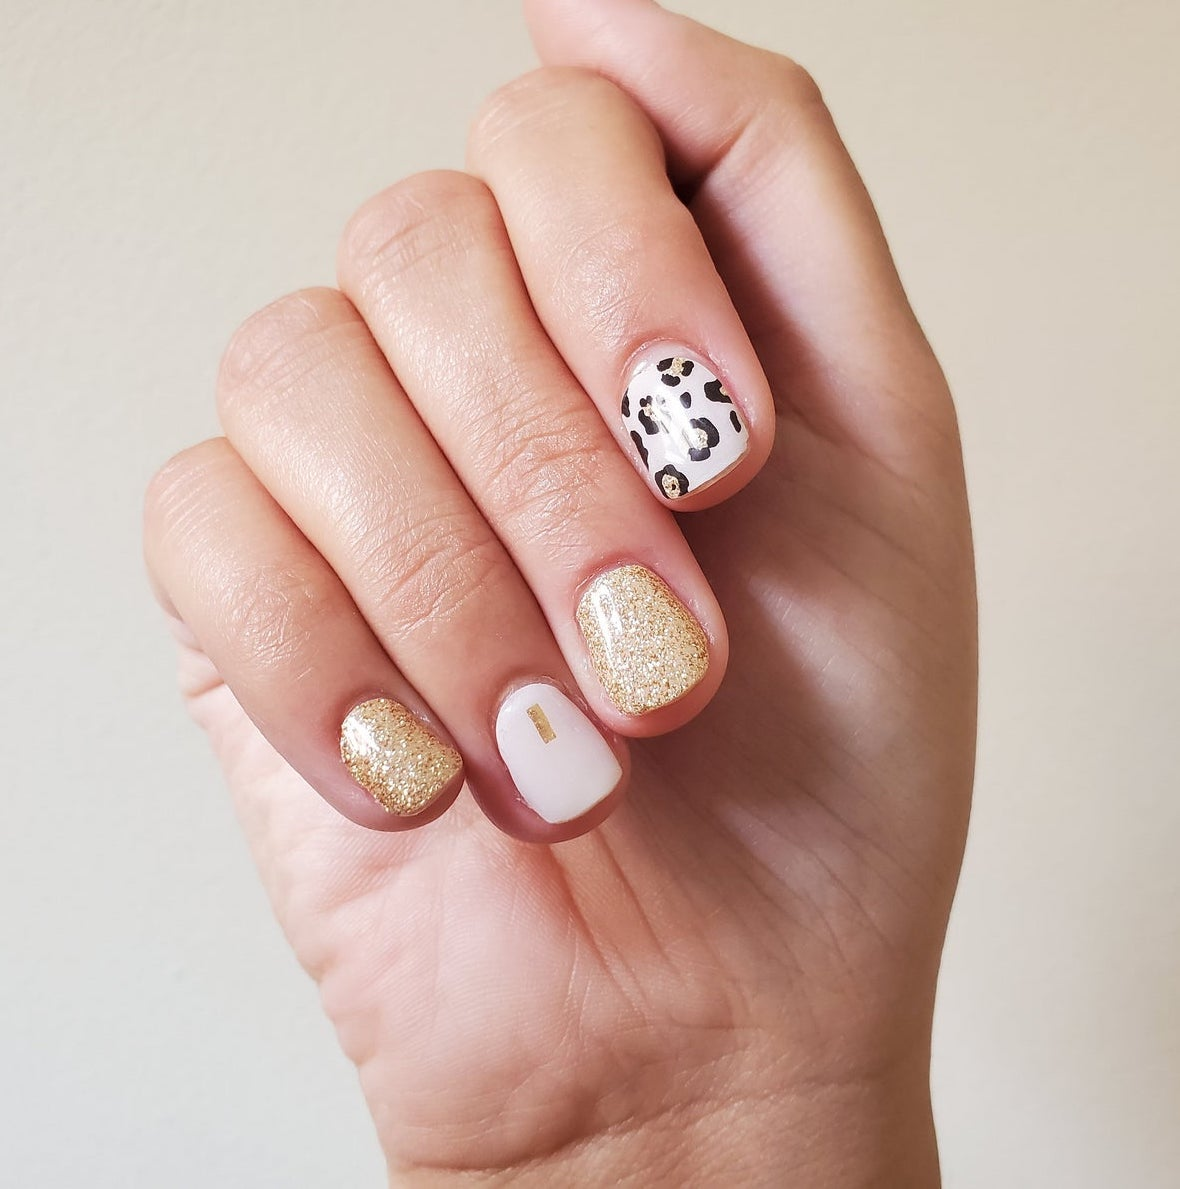 Short nails in pink and leopard print with gold glitter